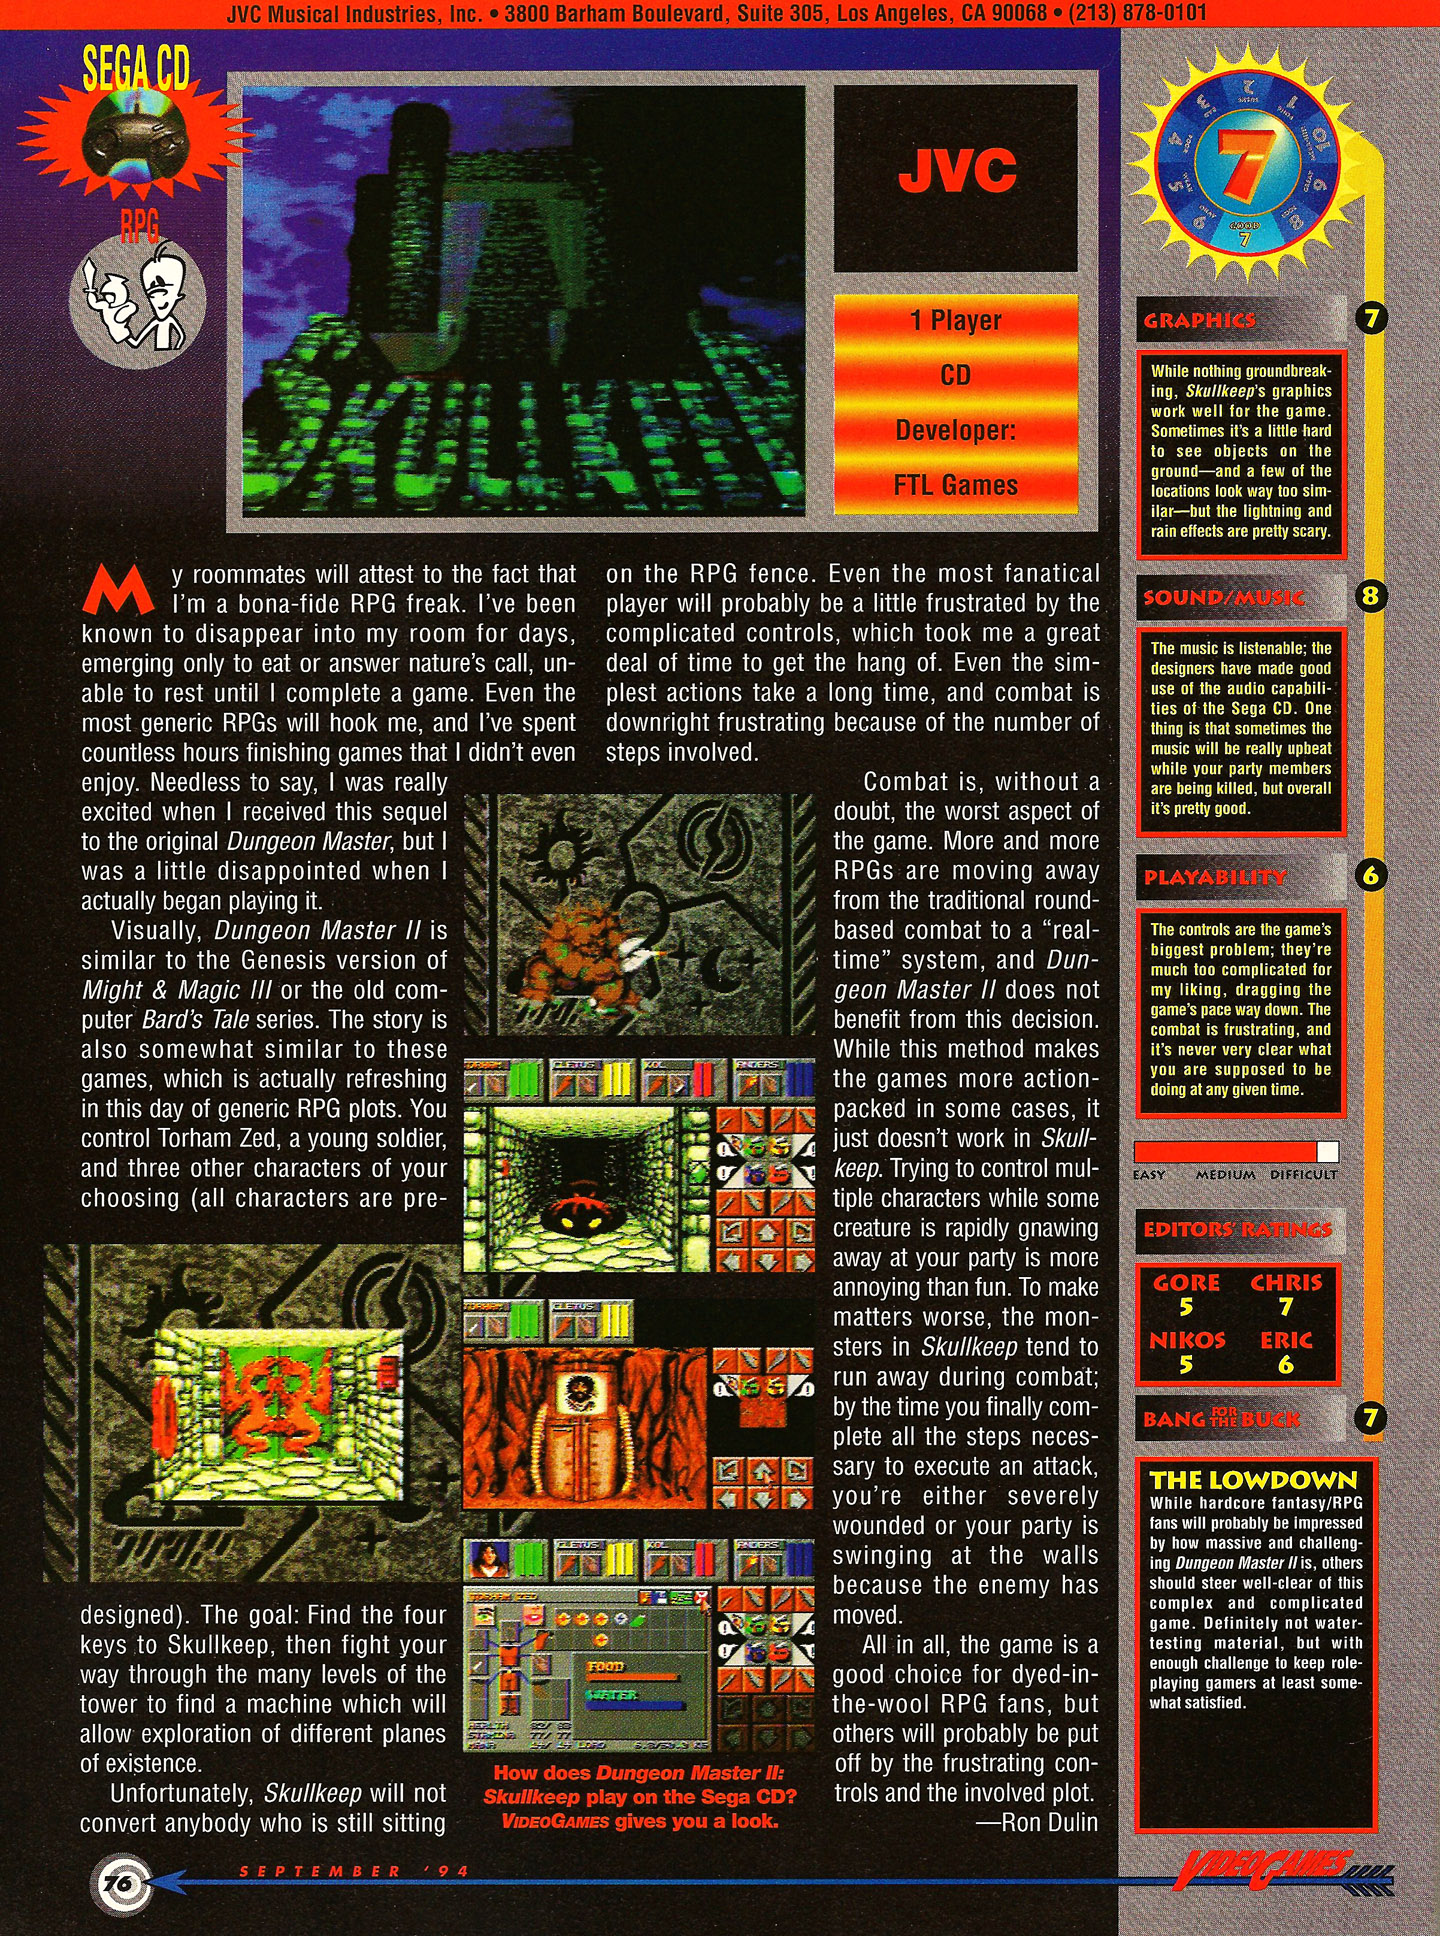 Dungeon Master II for Sega CD Review published in American magazine 'VideoGames And Computer Entertainment', Issue #68 September 1994, Page 76